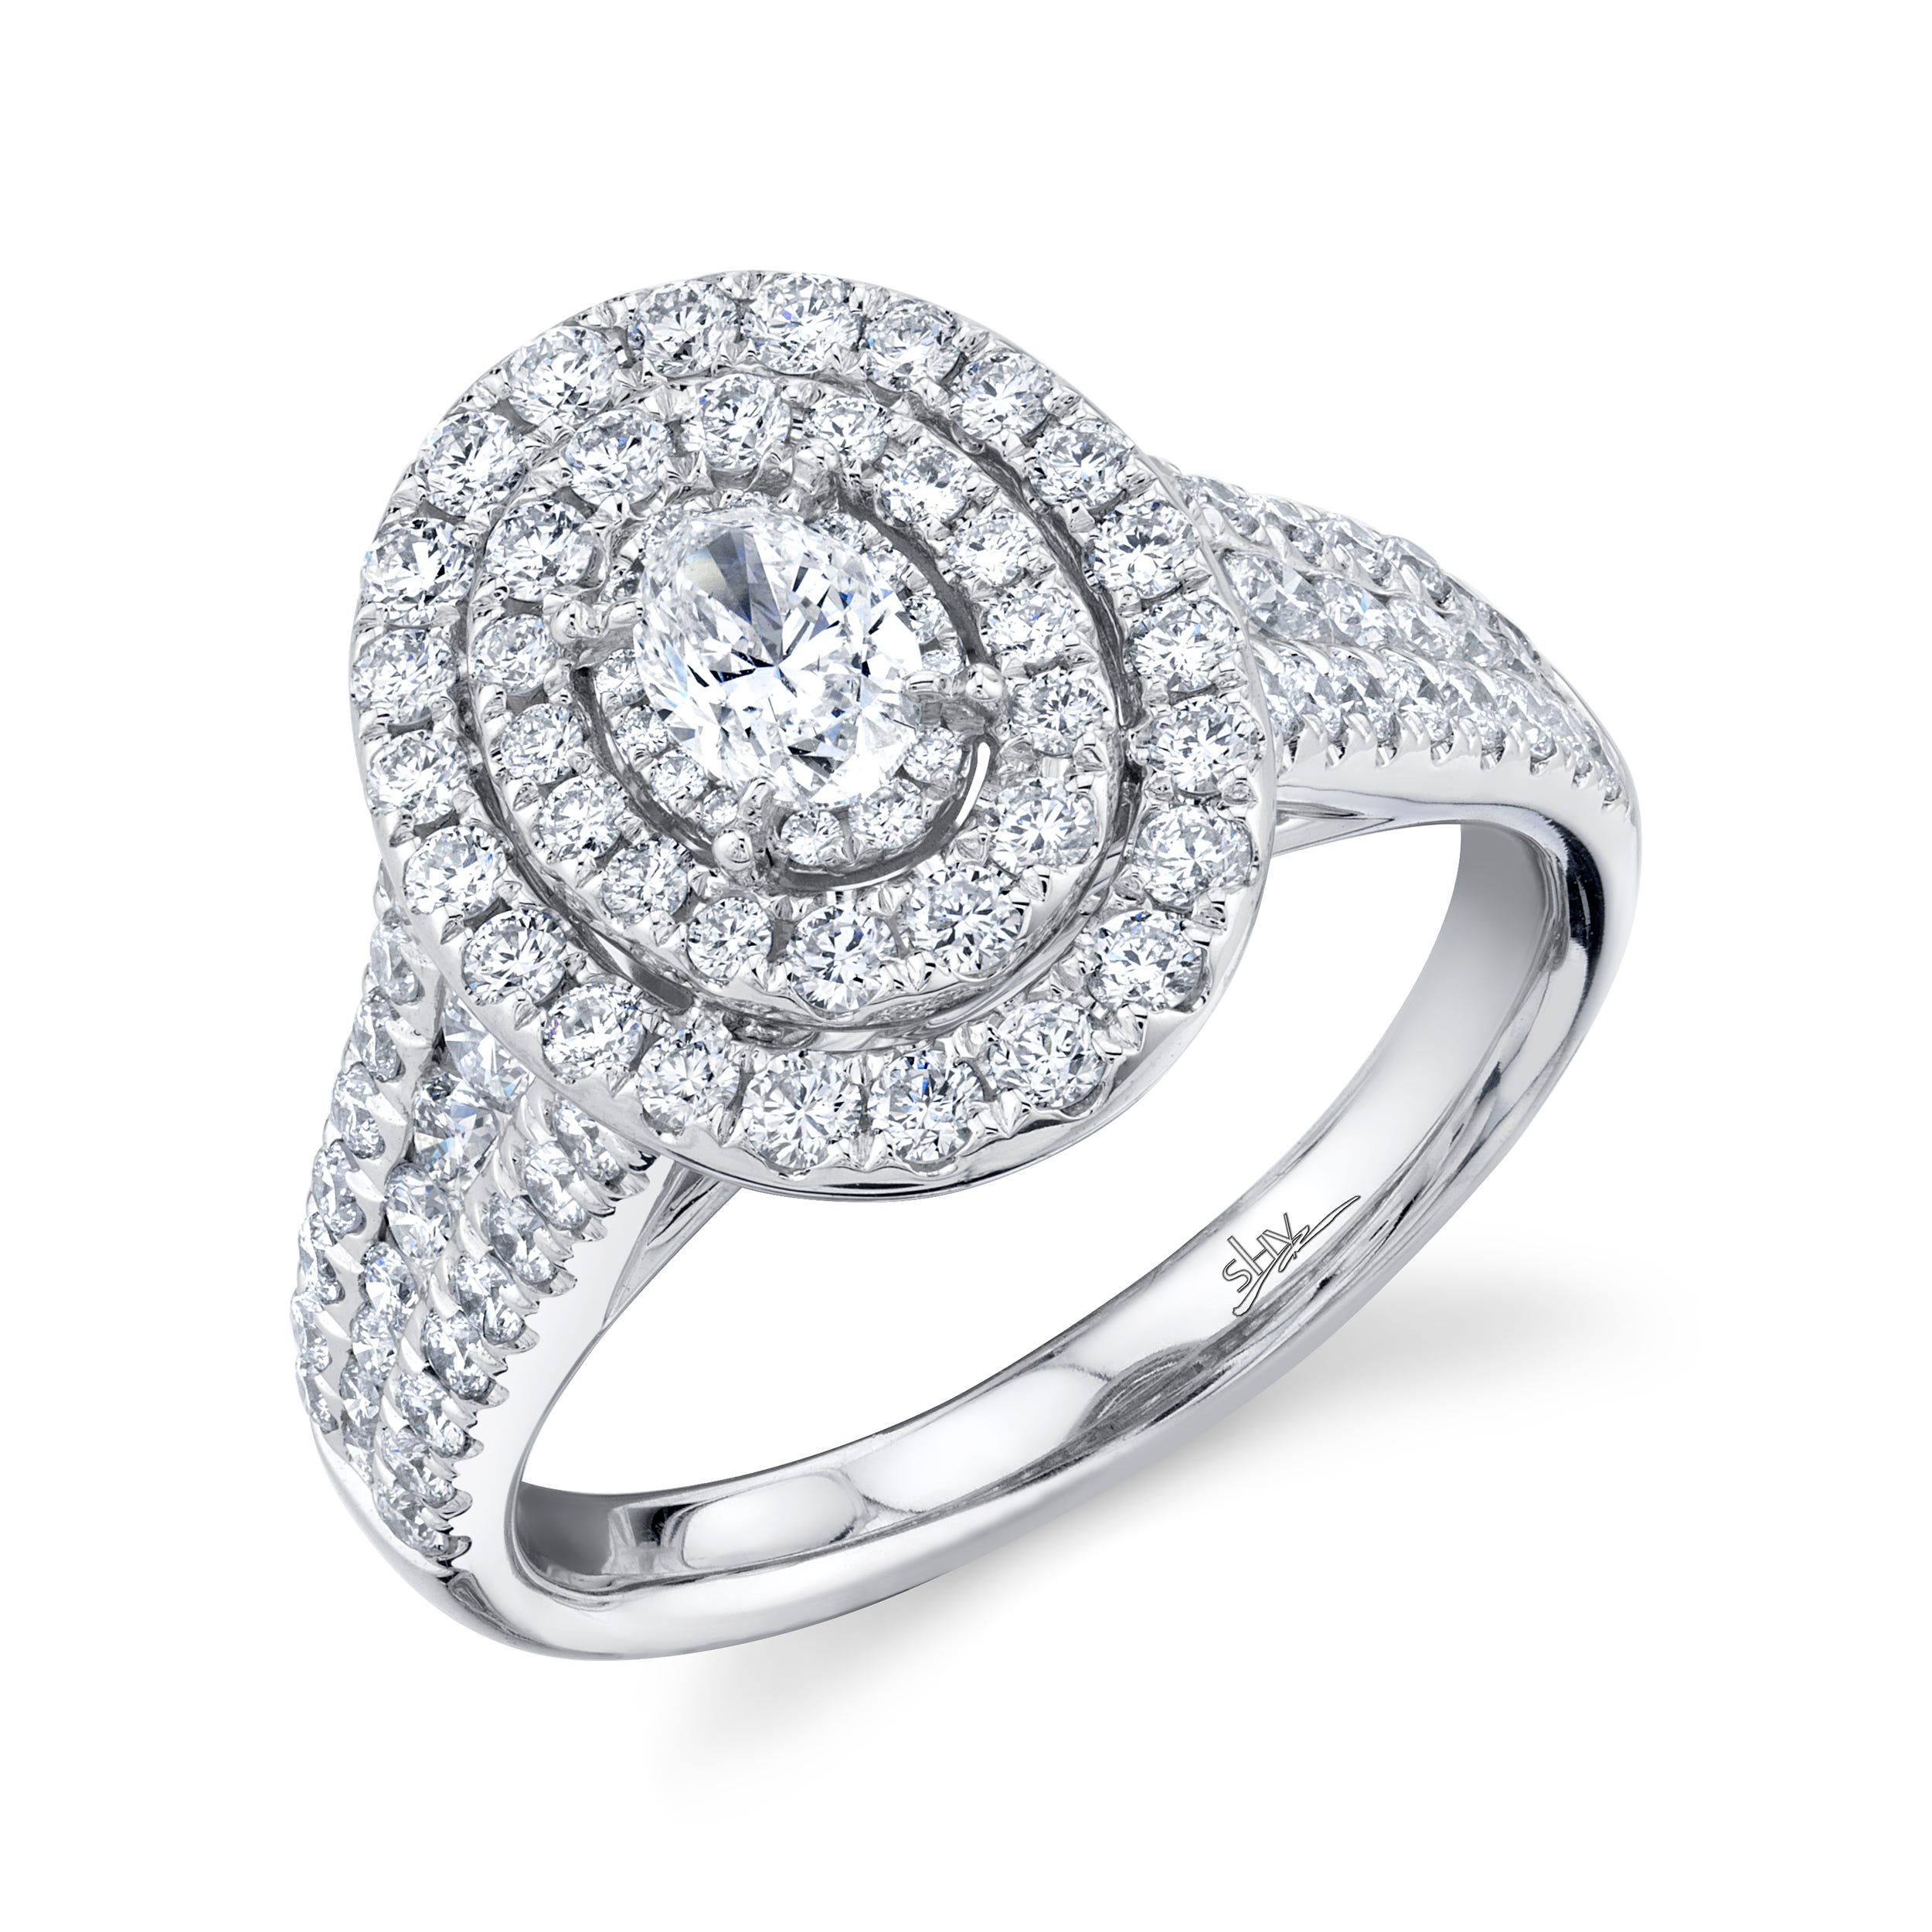 Shy Creation 1 1/2ctw. Oval Diamond Double Halo Engagement Ring in 14k White Gold SC22007161